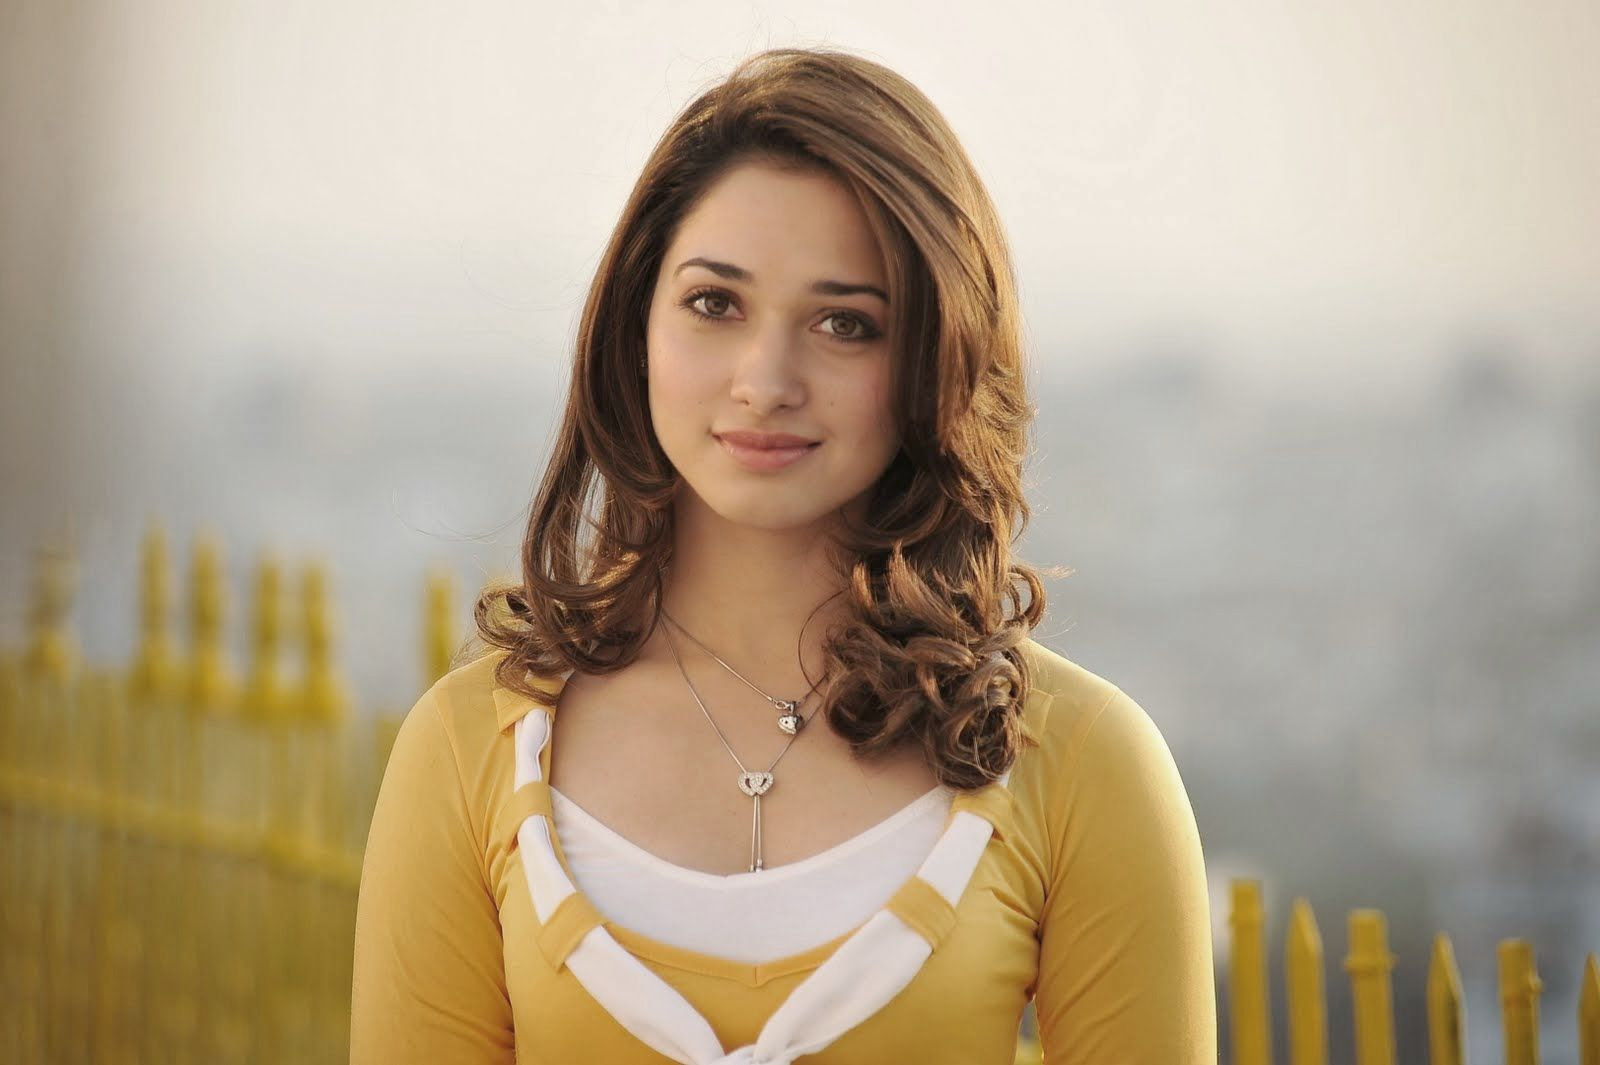 Tamanna dress removing images from iphone